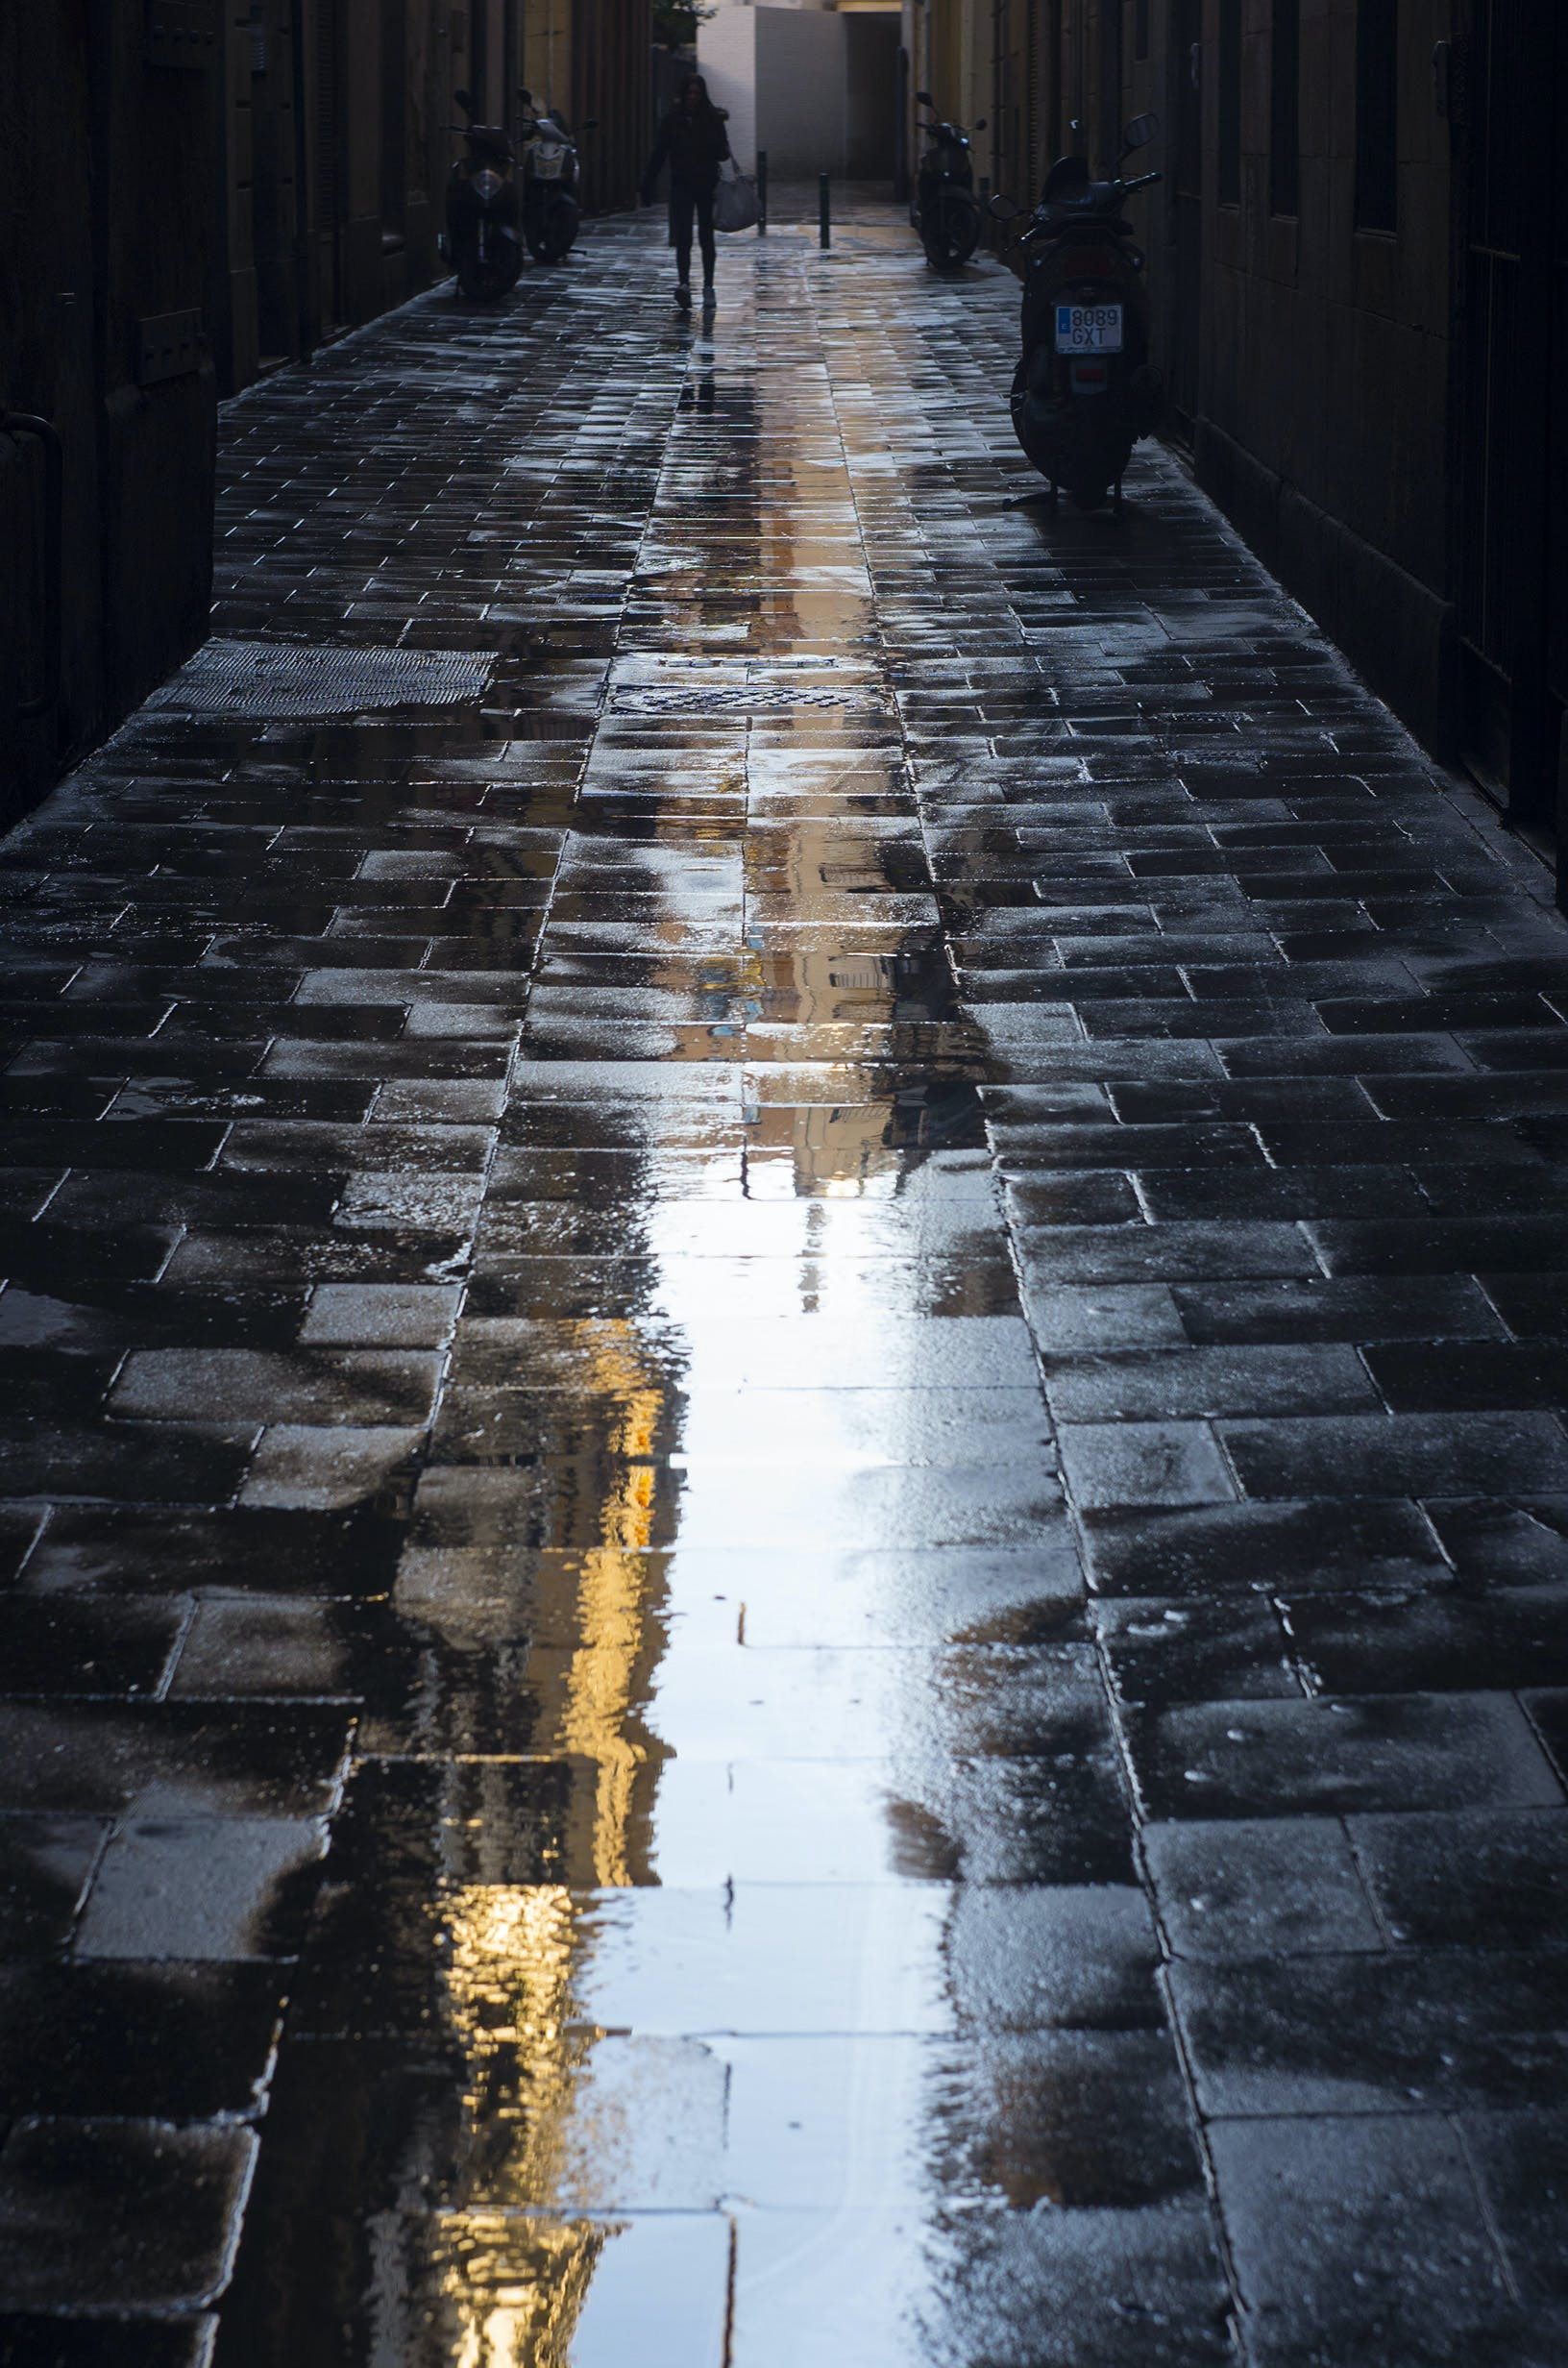 Free stock photo of BCN, street, Wet Floor